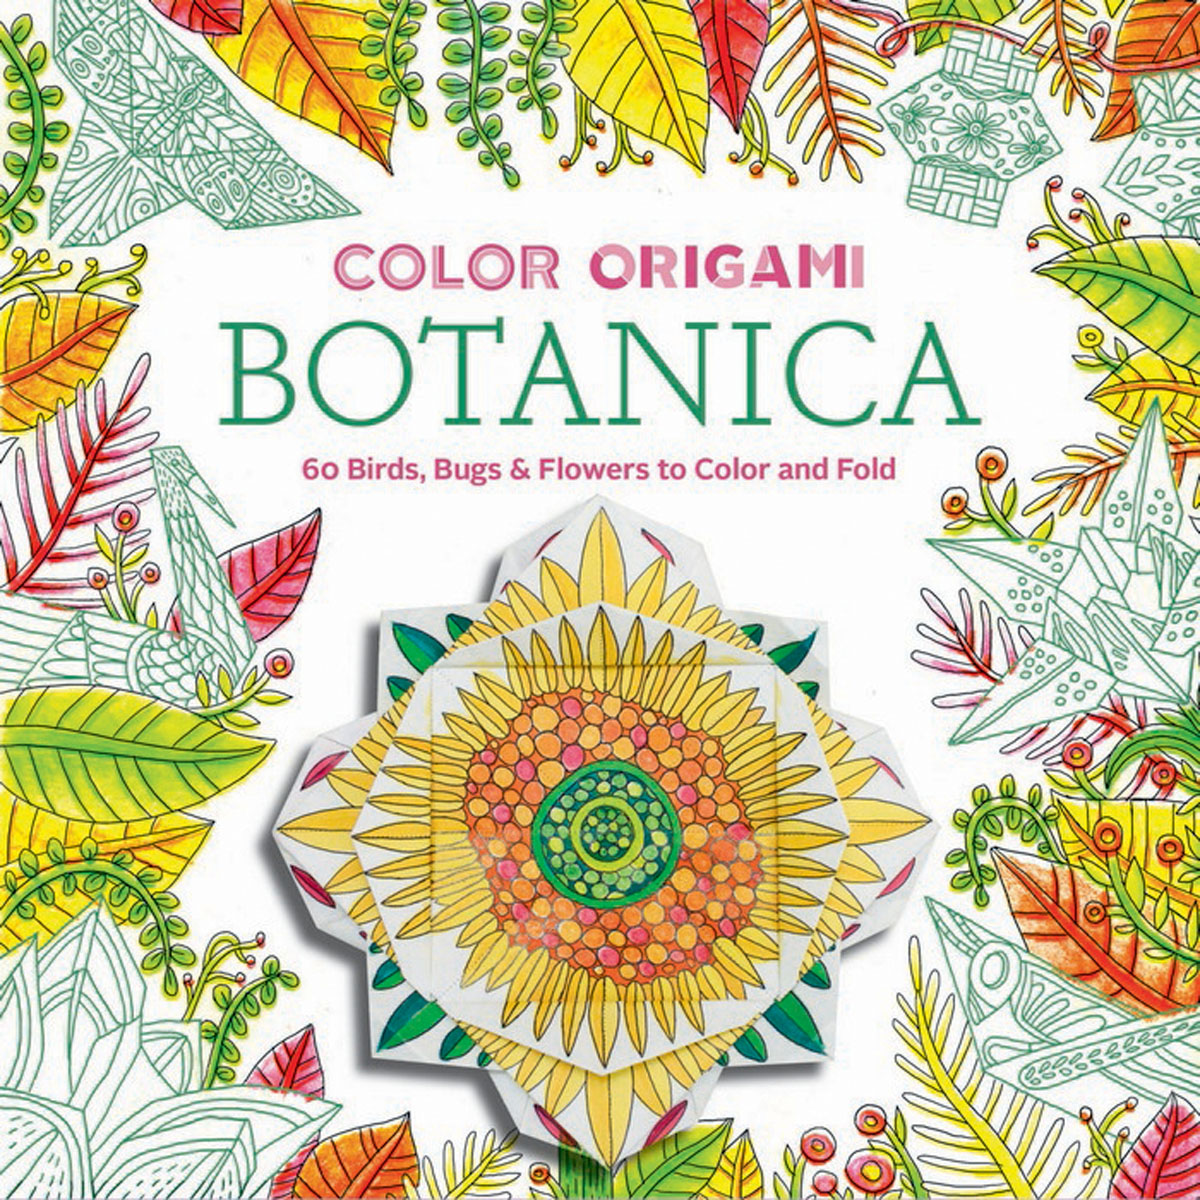 Color Origami: Botanica (Adult Coloring Book) fantastic cities a coloring book of amazing places real and imagined